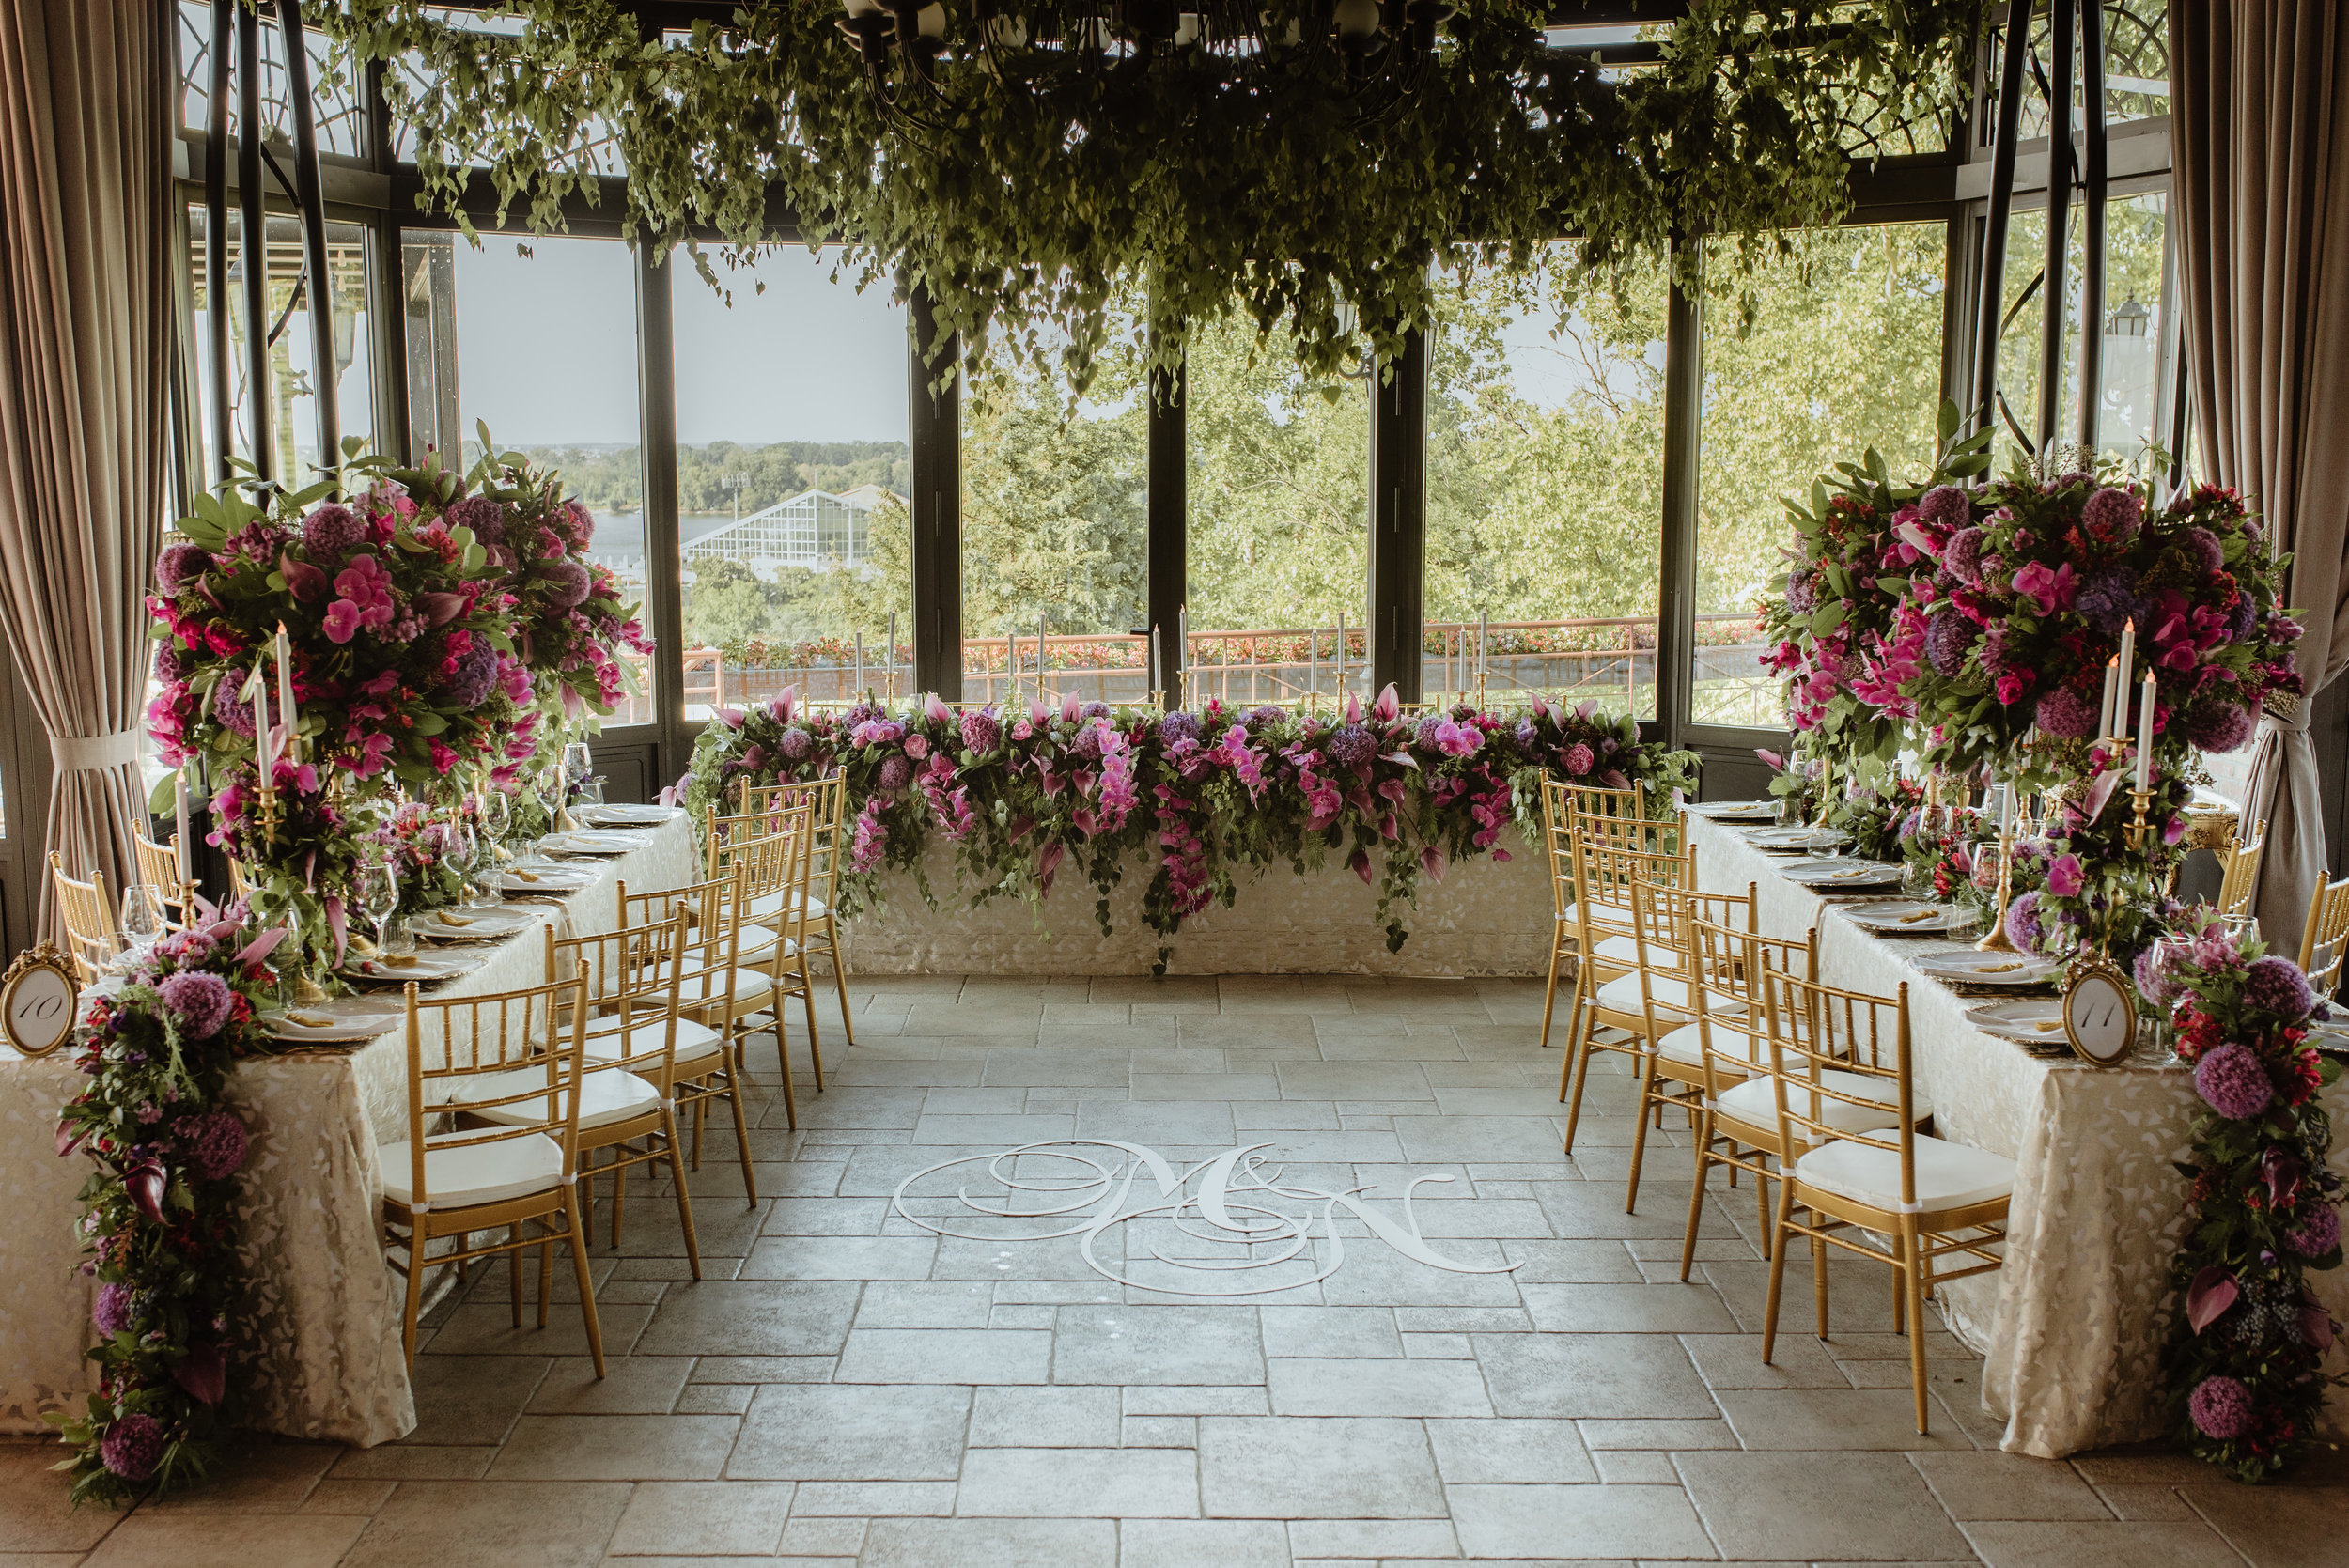 AN 11TH CENTURY FORTRESS WEDDING